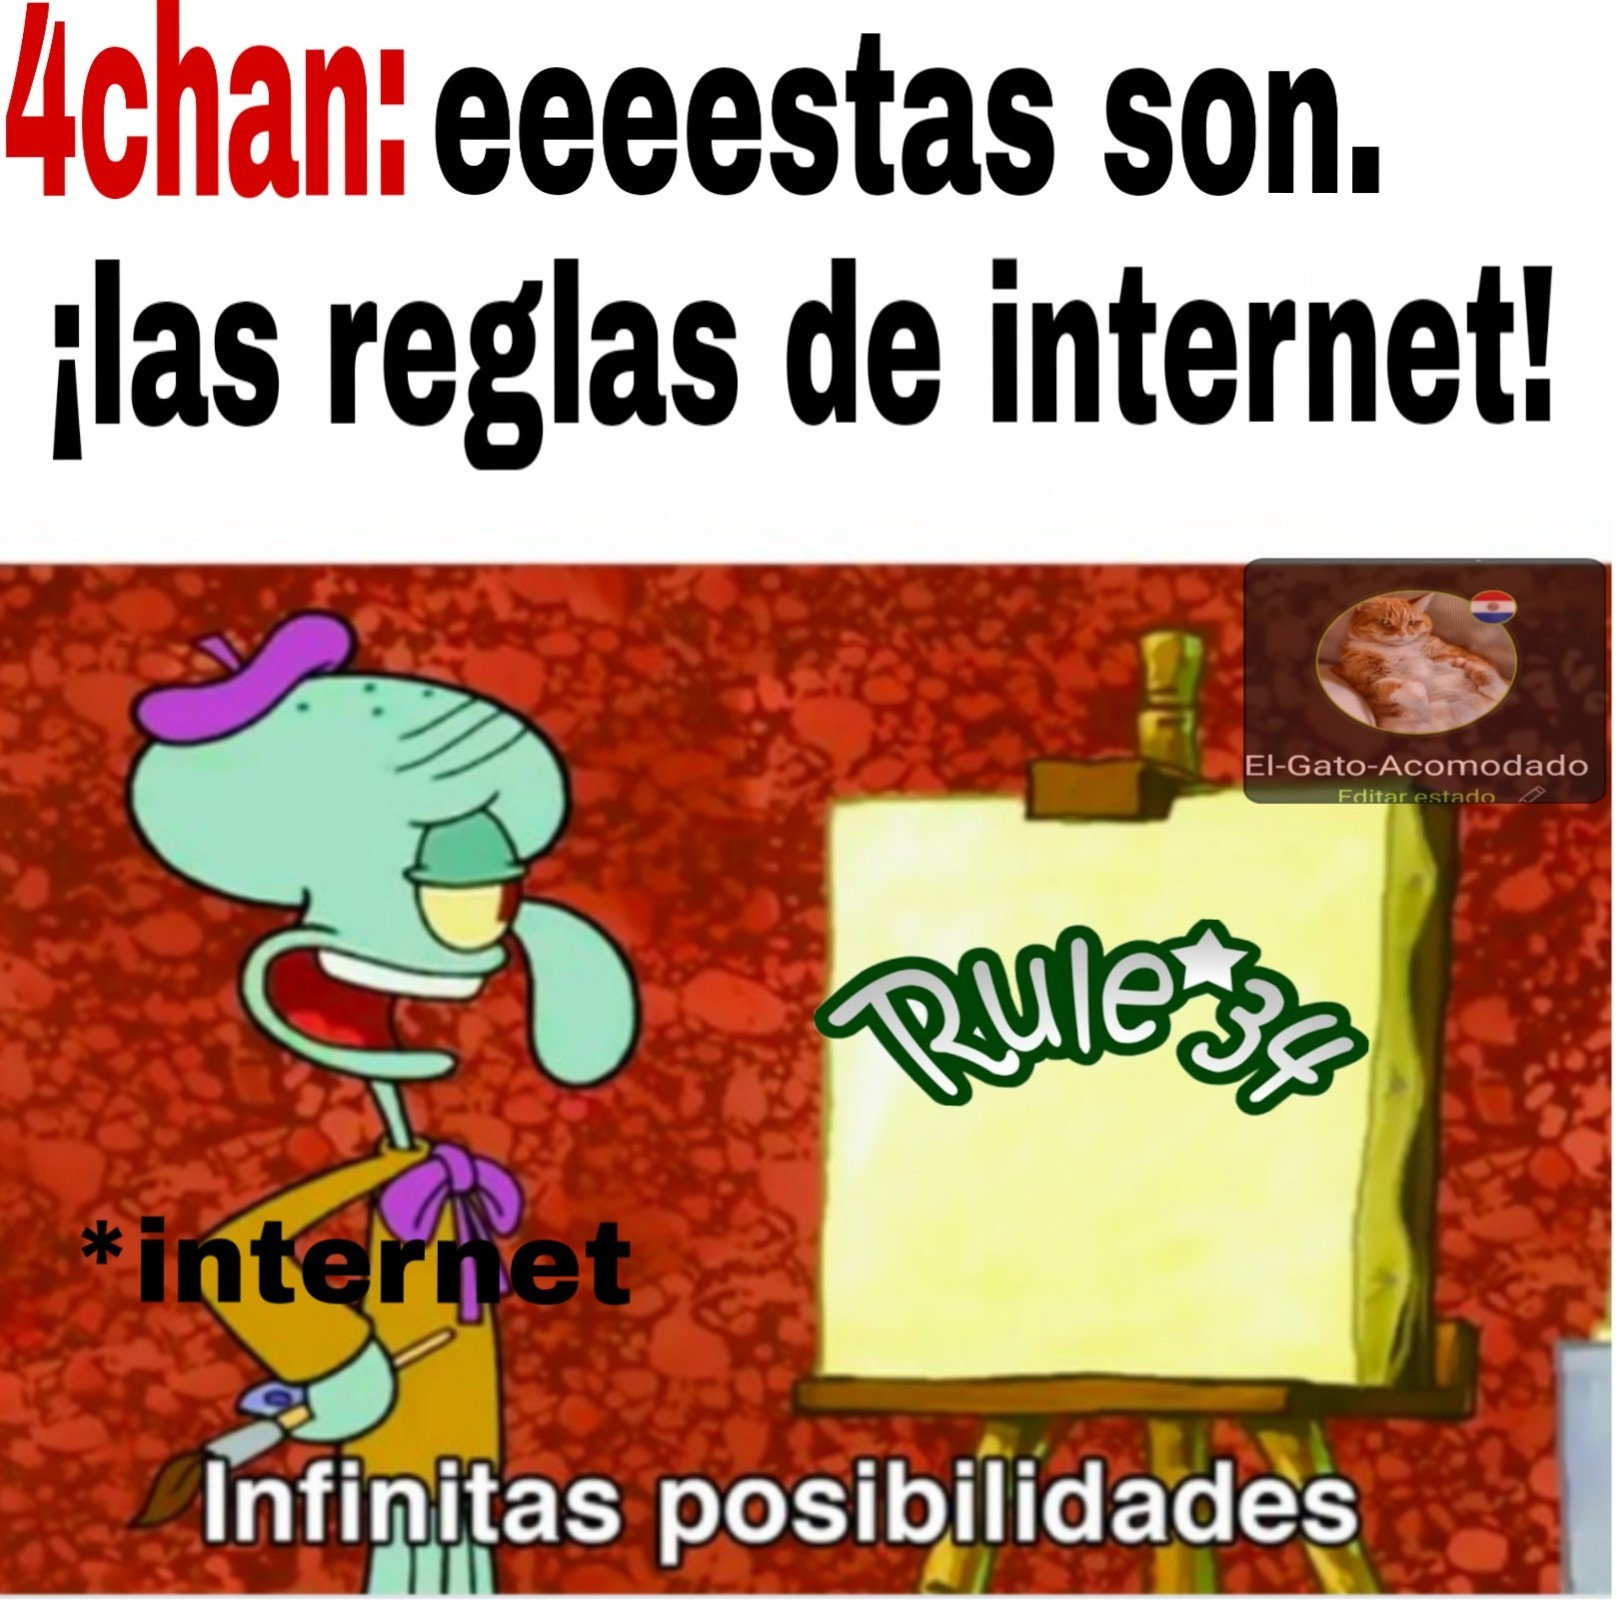 Se que puedes leer el título muchacho Are you motherfuckers ready For the new shit? Stand up and admit Tomorrow's never coming This is the new shit Stand up and admit Do we get it? no Do we want it? yeah This is the new shit Stand up and admit~ - meme